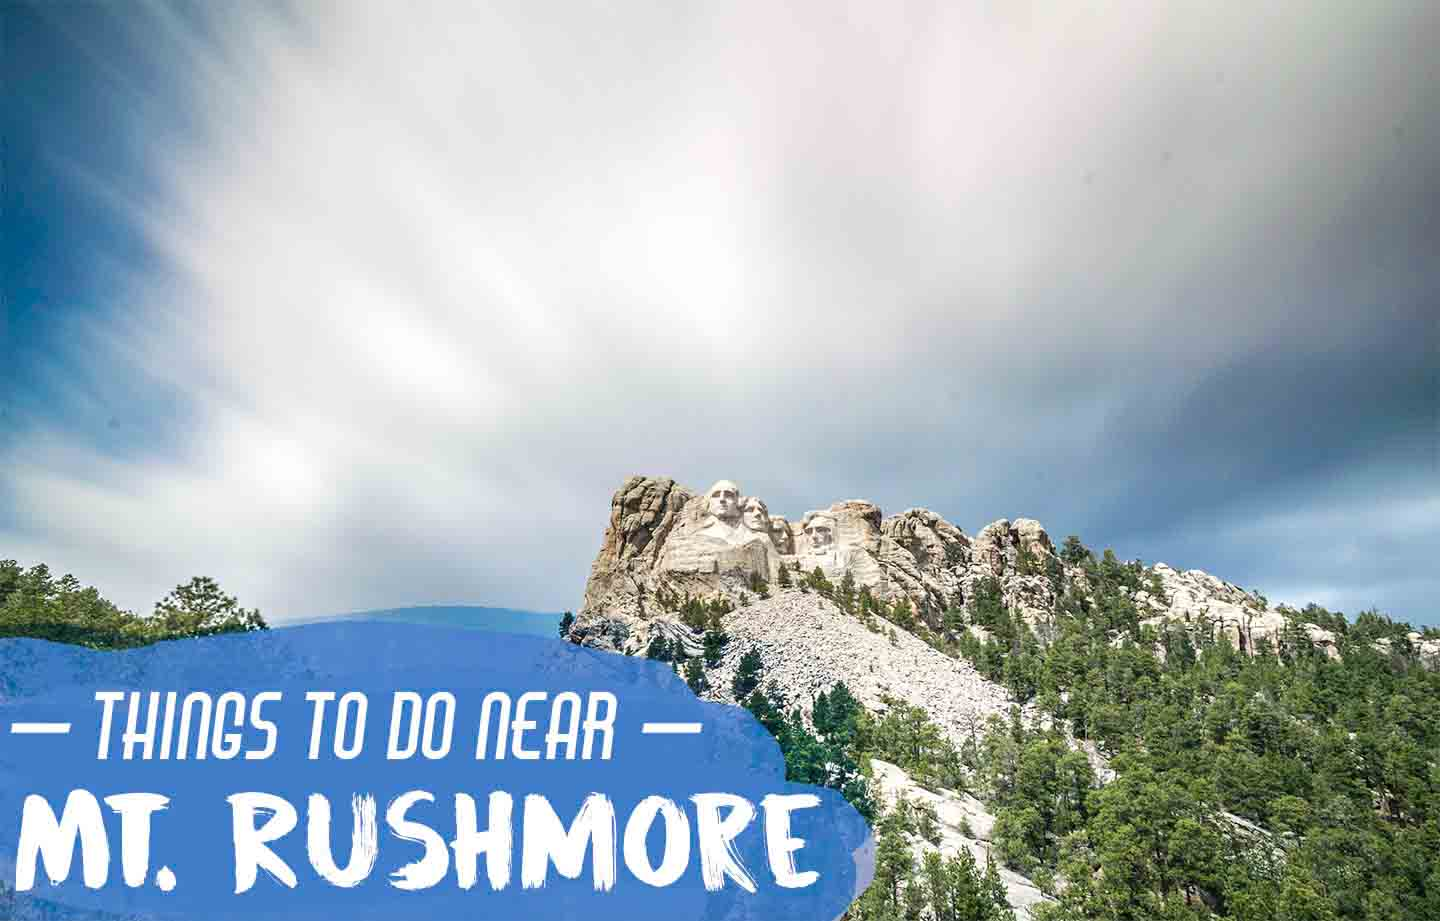 Things to do near Mt Rushmore featured image